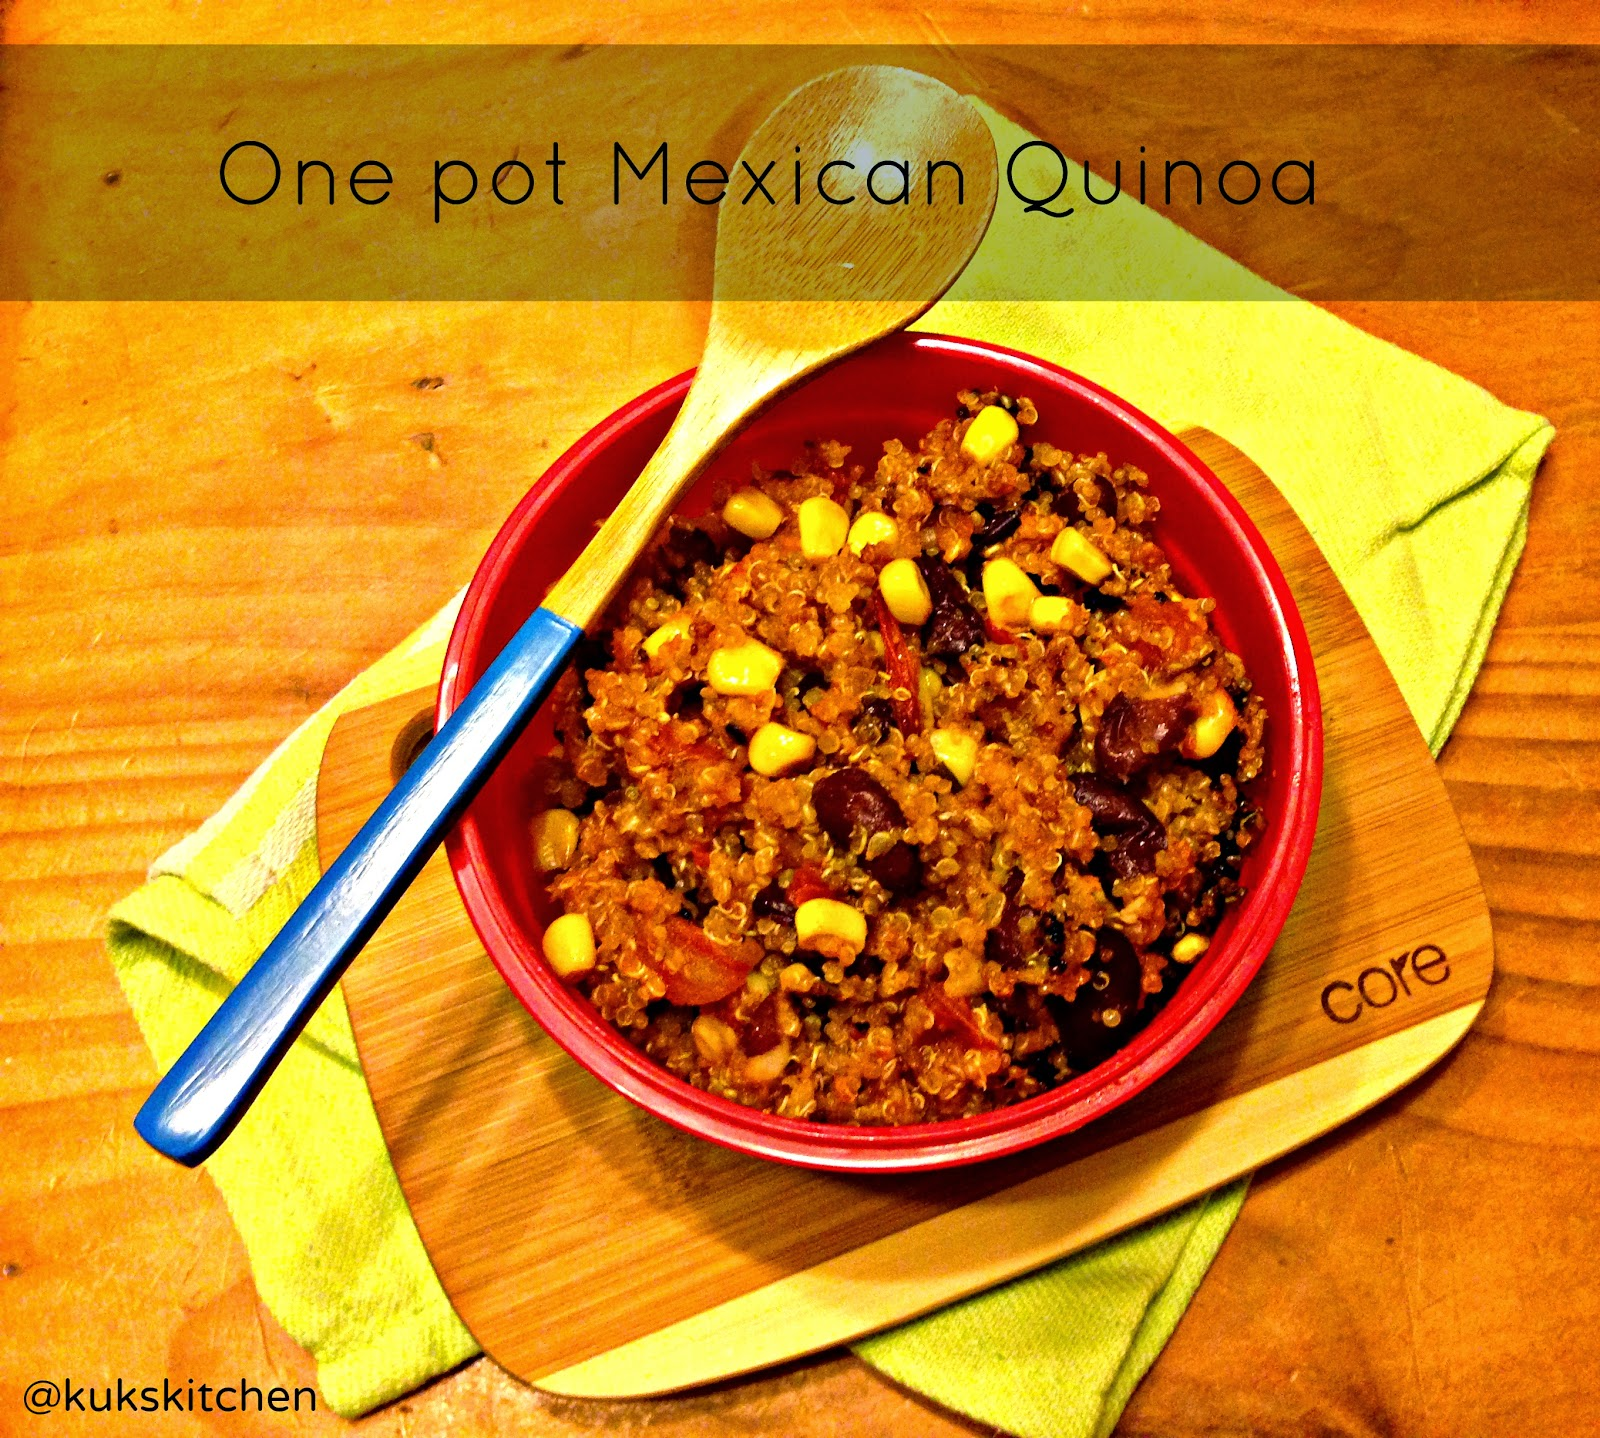 One pot Mexican Quinoa | Kukskitchen